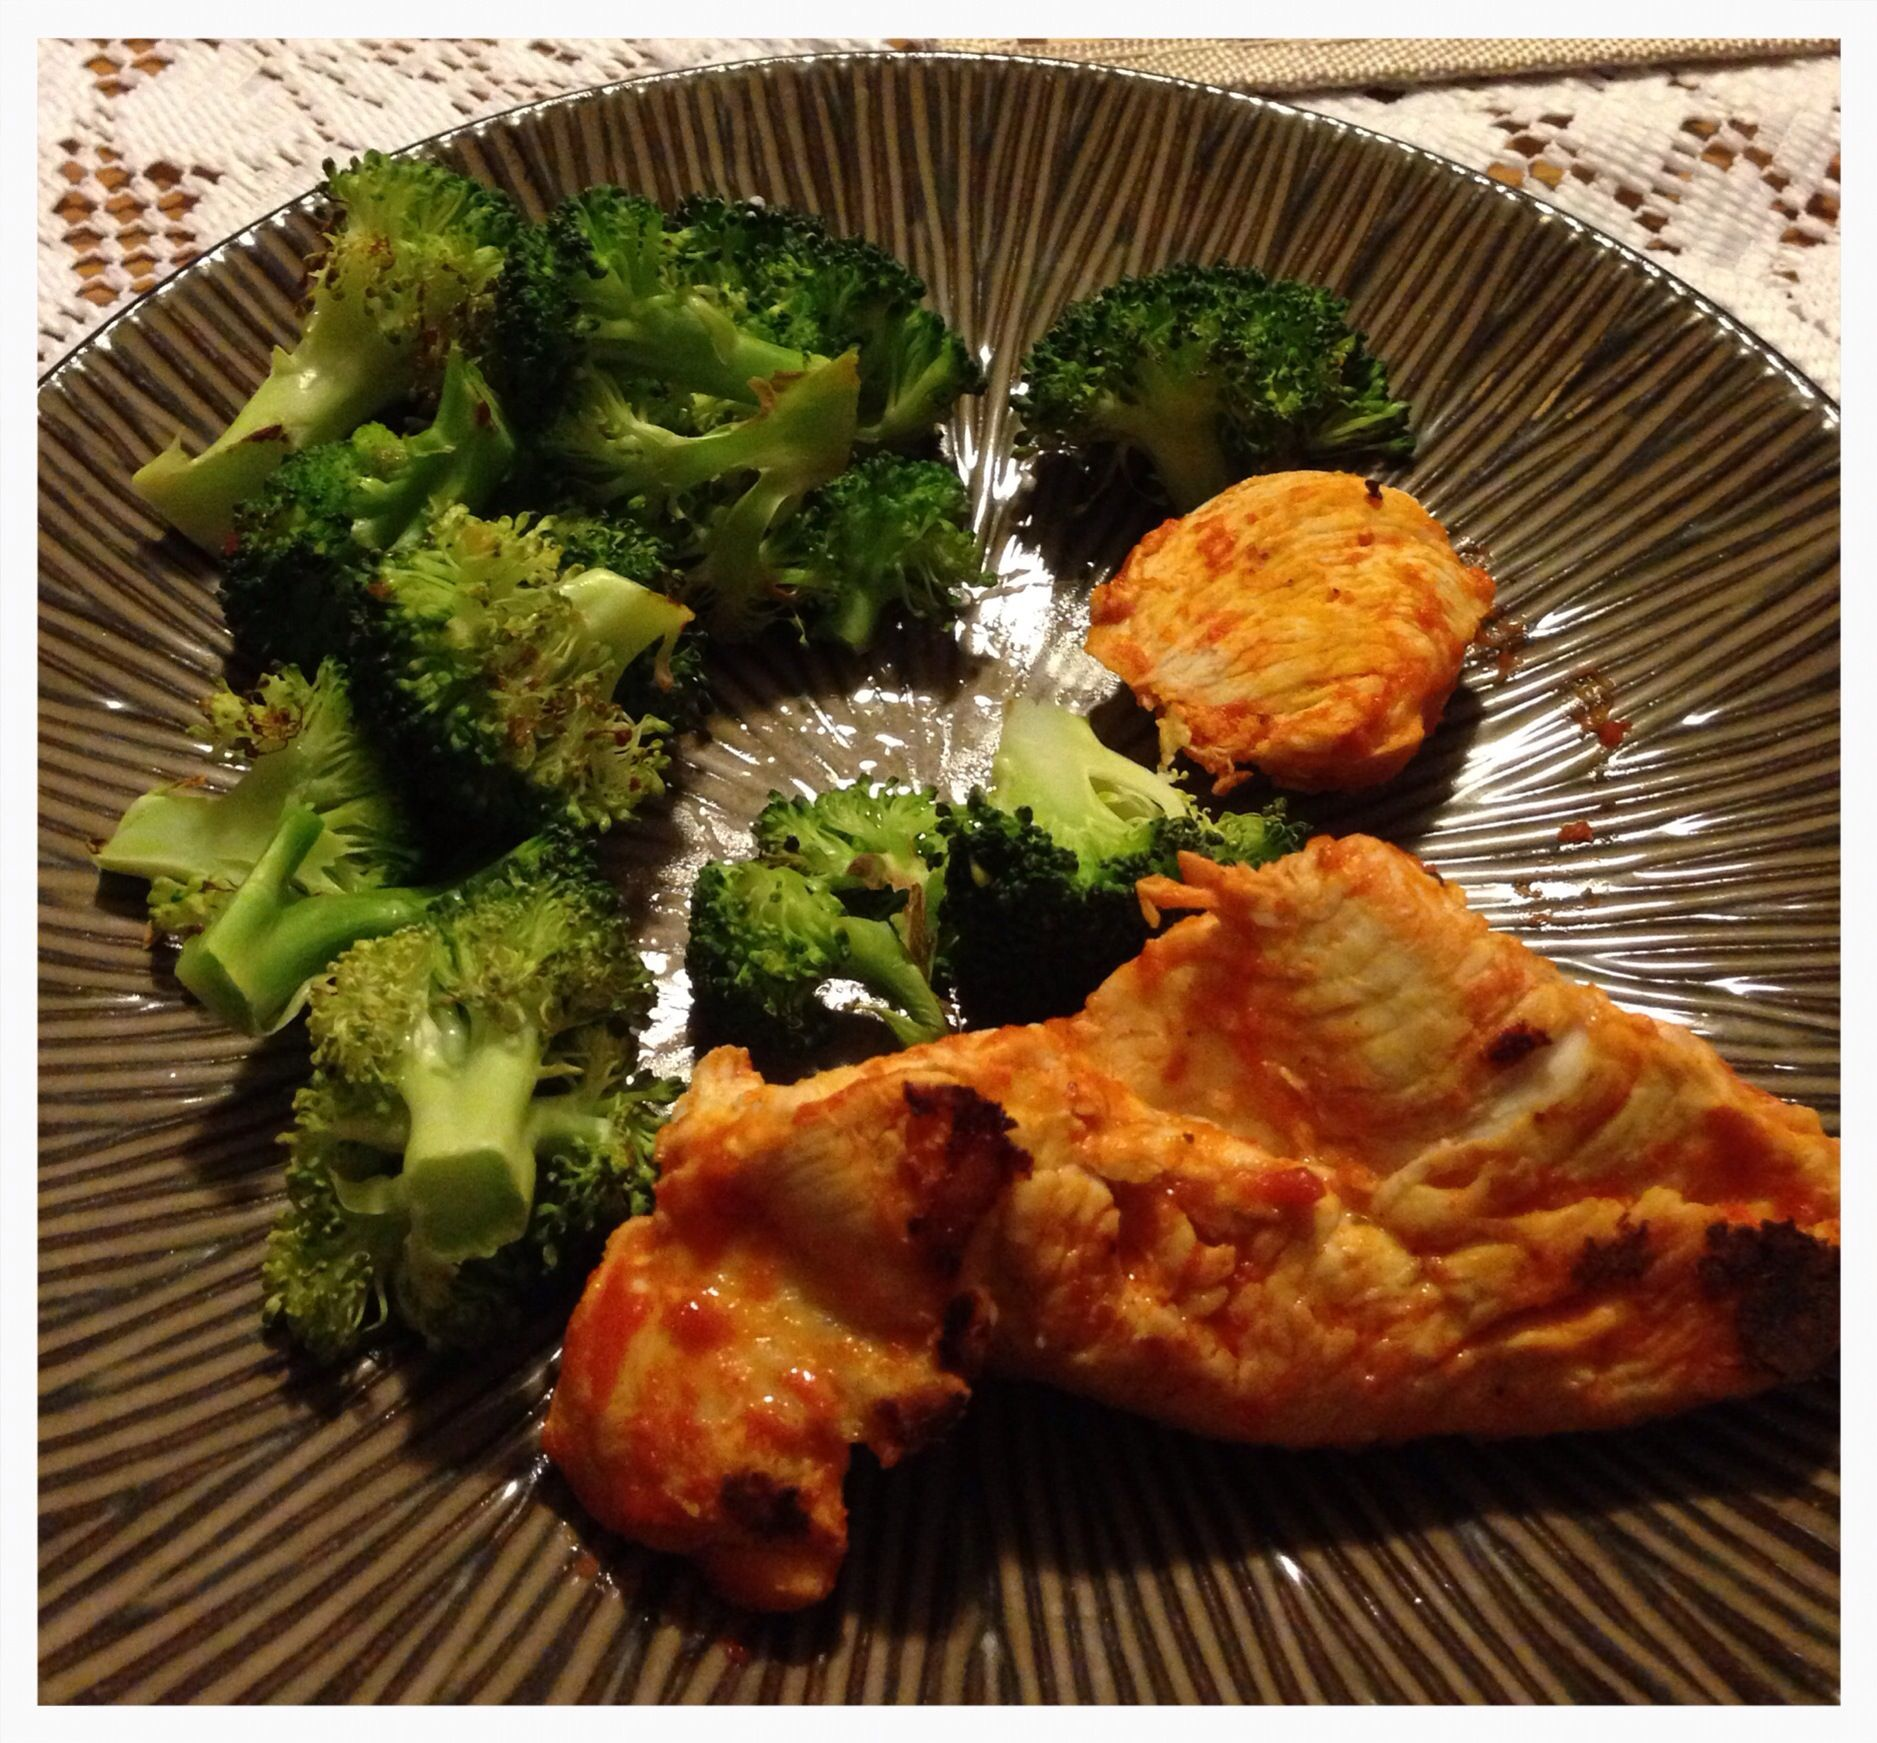 Need some crunch or a kick to dinner? Spicy chicken & crunchy broccoli should do it! Pan sear chicken breast on stovetop in Franks Red Hot Sauce. Roast broccoli in oven on 450 degrees for 8-10 min. Enjoy!